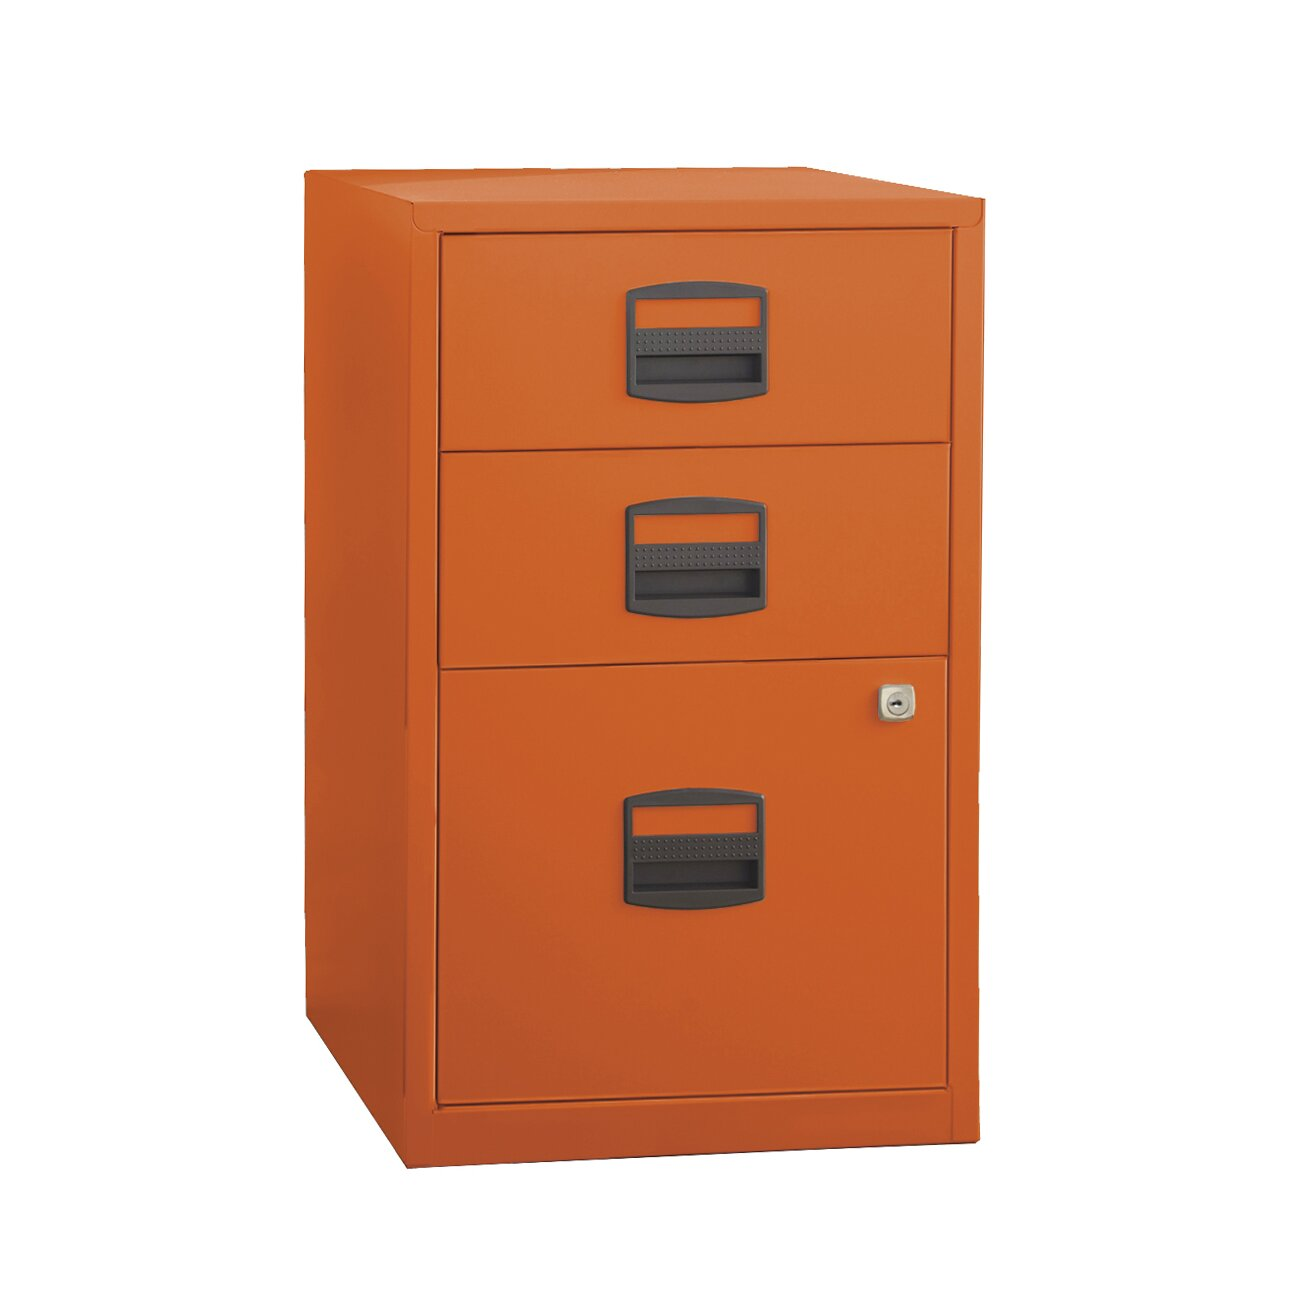 Bindertek 3 drawer steel home or office filing cabinet reviews wayfair - Types of file cabinets for a home office ...